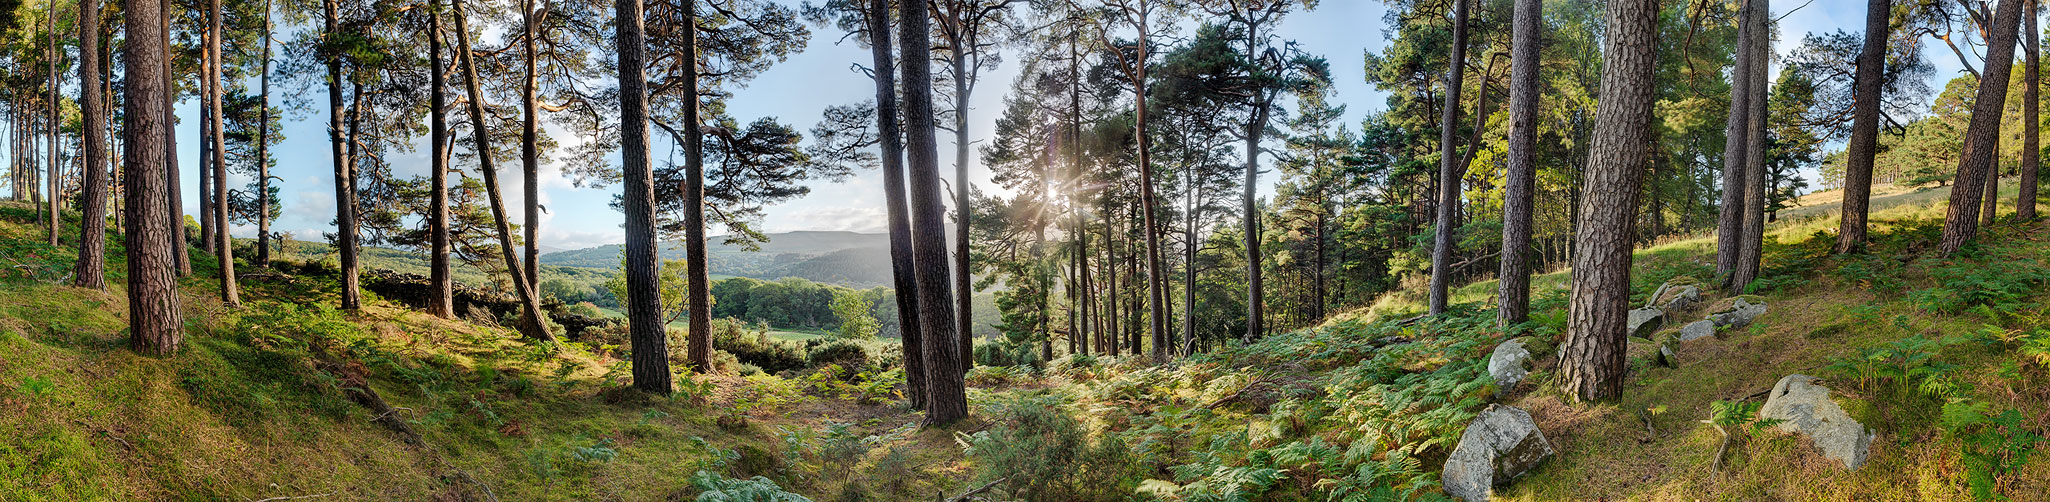 Forest Photo Lough Dan Wicklow